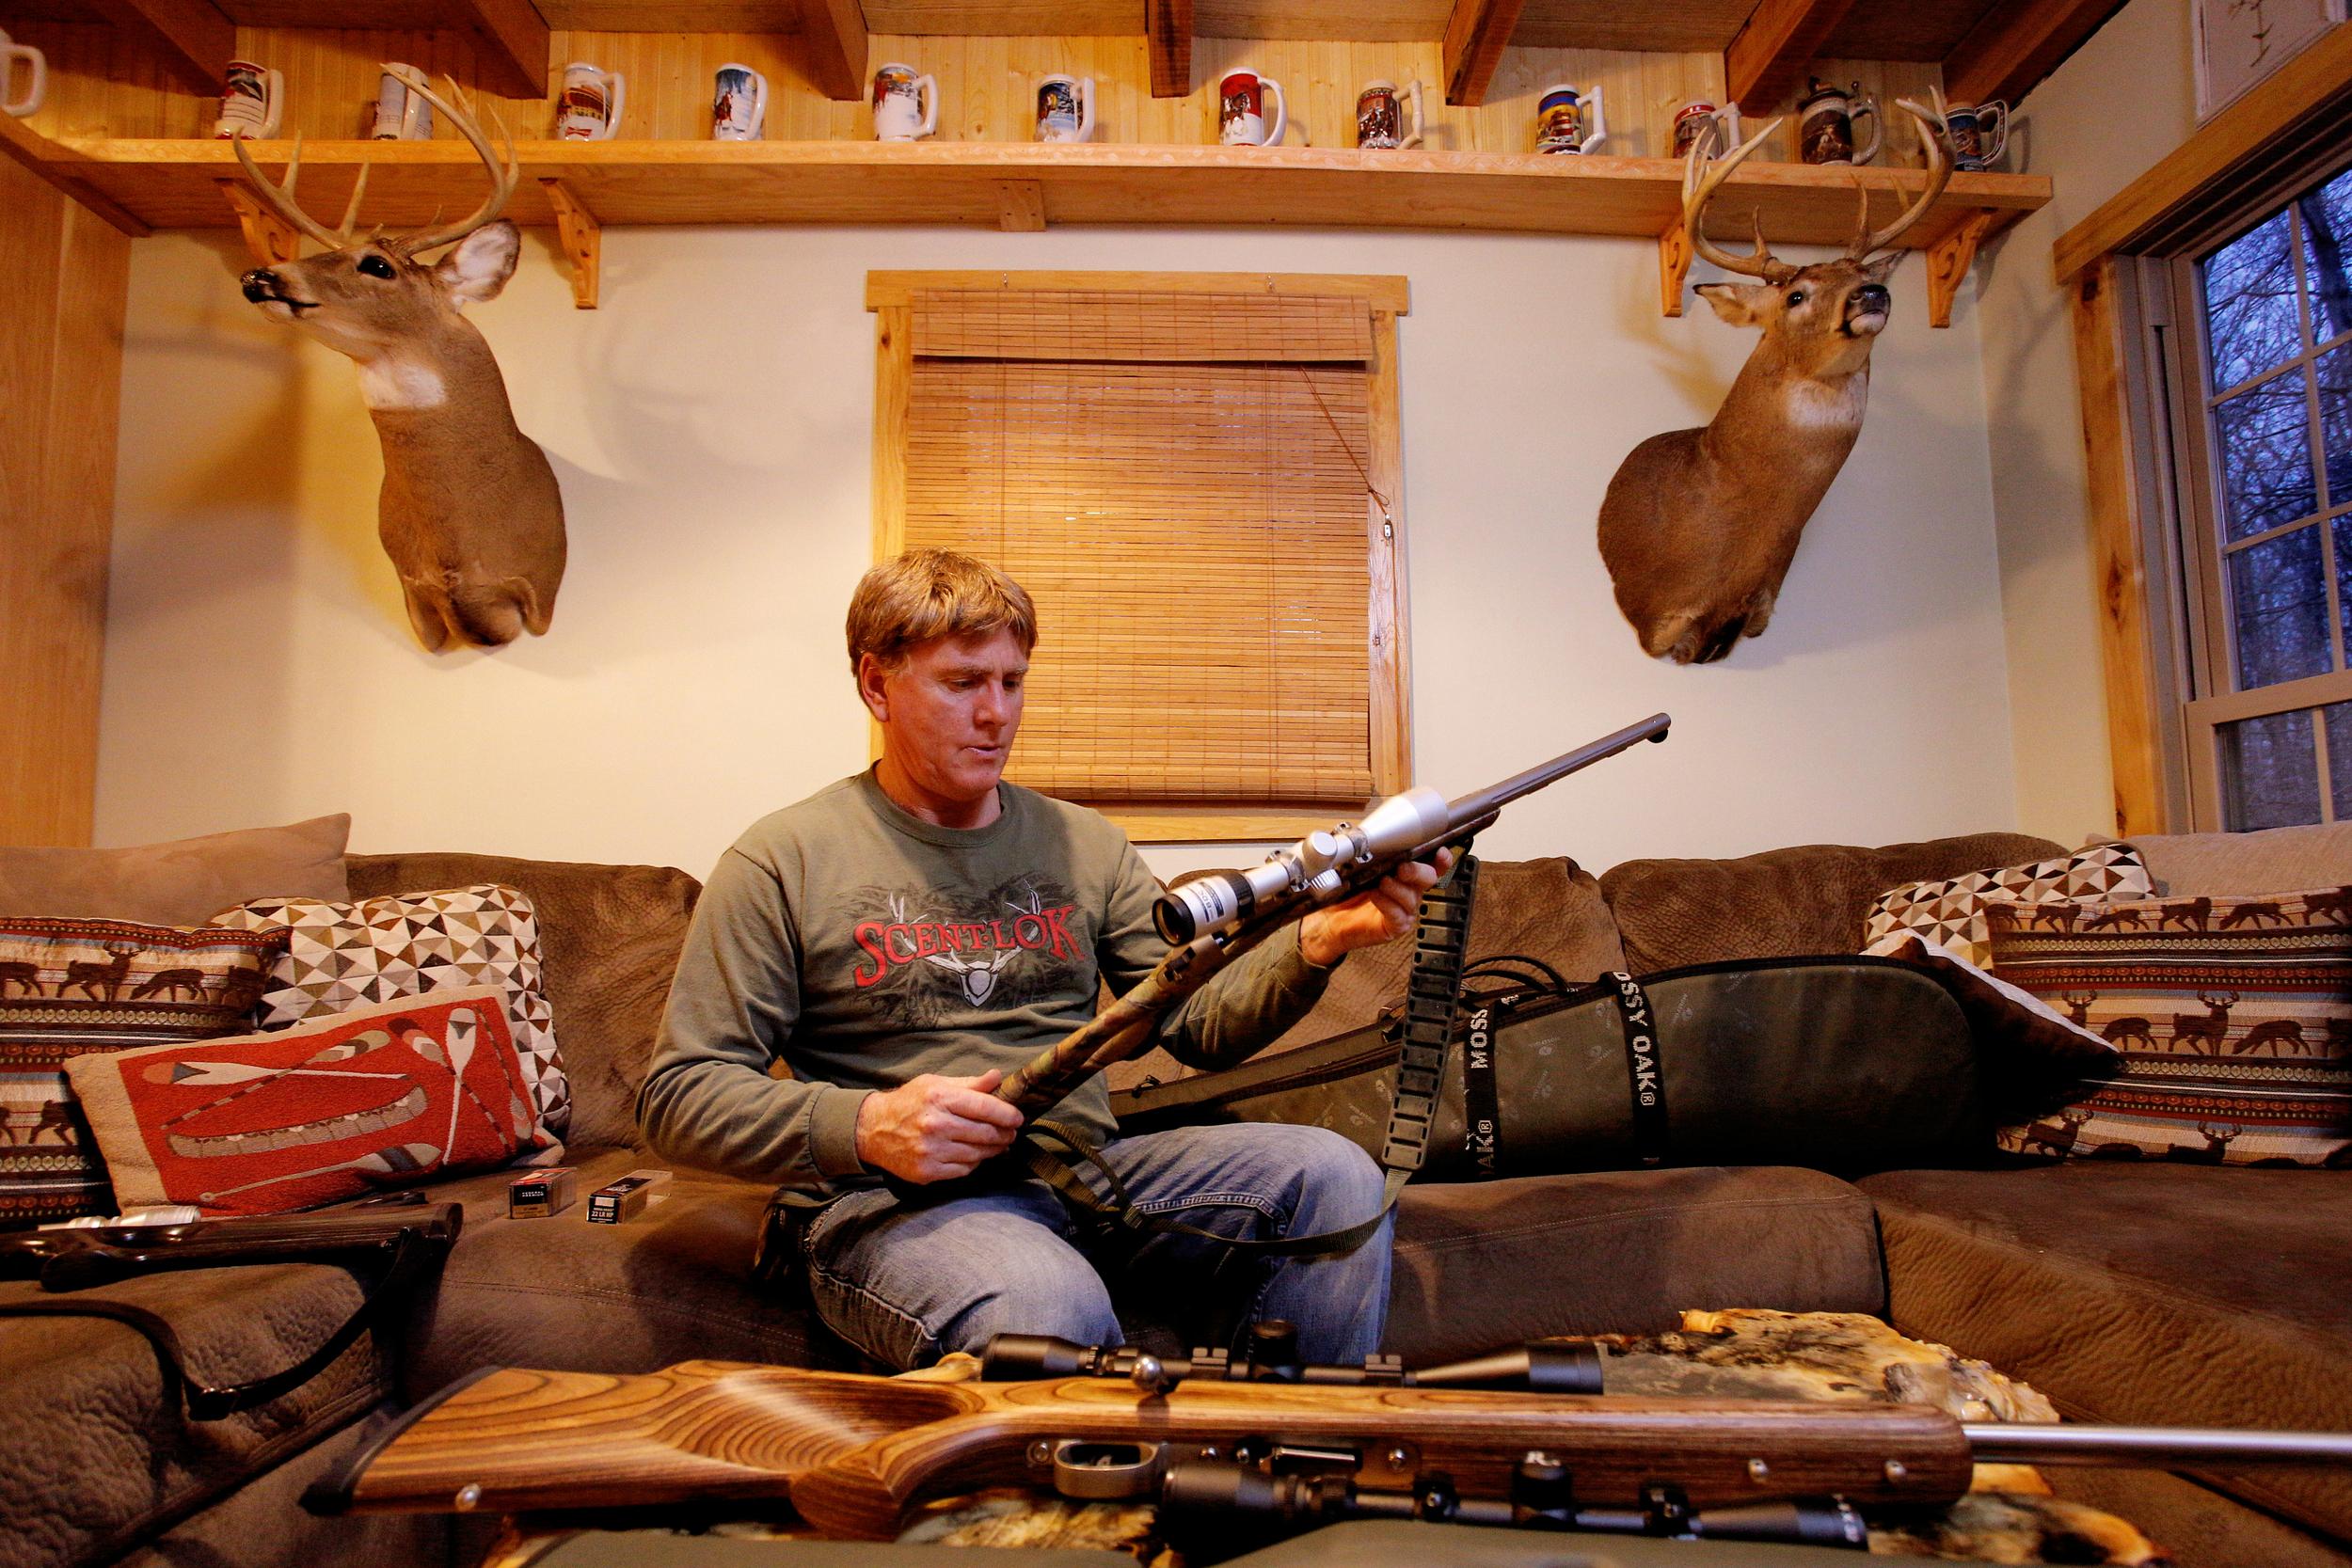 Billy Kittle examines his handmade 12-gauge Kentucky rifle at his home in Glouster, Ohio, on November 19, 2014.